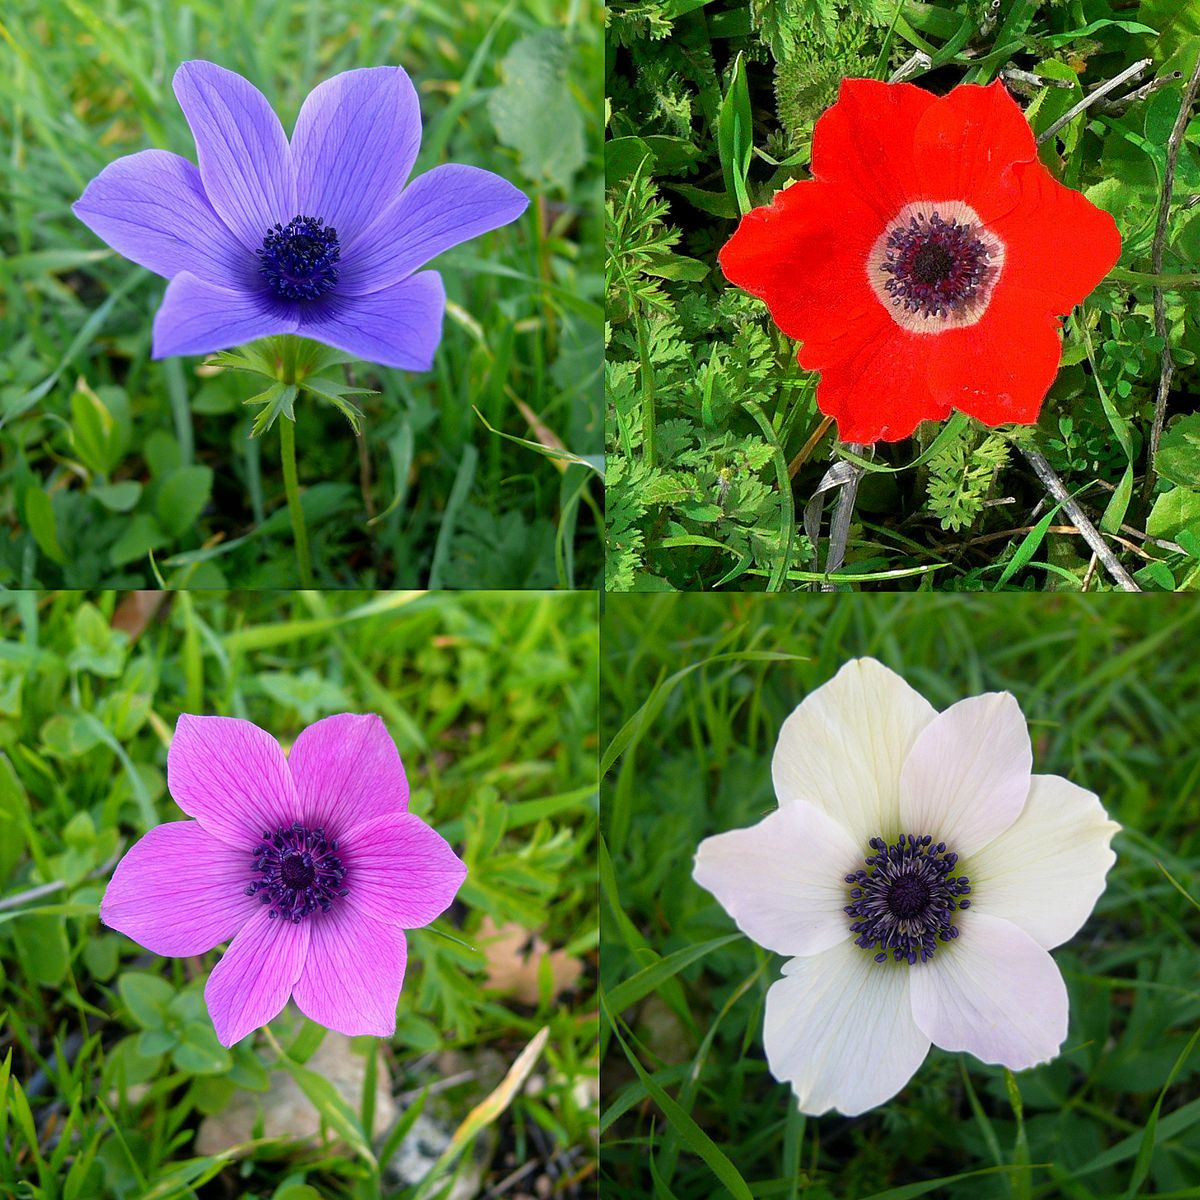 Anemone Coronaria Also Called Windflower Or Simply Anemone Is A Bulb Native To Northern Africa Southern Europ Anemone Flower Artificial Flowers Decor Anemone